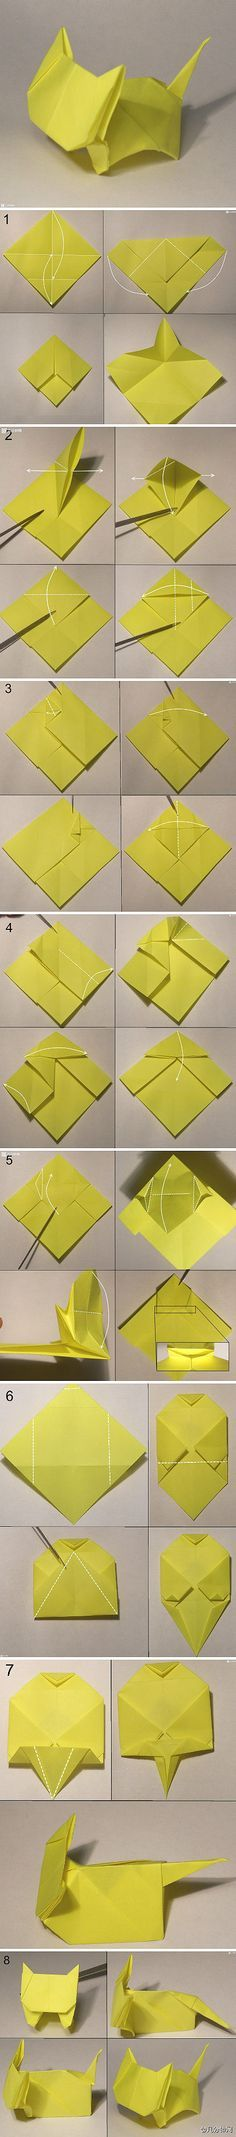 We've always wanted to build origami shapes, but it looked too hard to learn. Turns out we were wrong, we found these awesome origami tutorials that would allow any beginner to start building origami shapes. Source by Gato Origami, Instruções Origami, Origami And Kirigami, Origami Paper Art, Diy Paper, Paper Crafts, Simple Origami, Origami Tattoo, Origami Bookmark